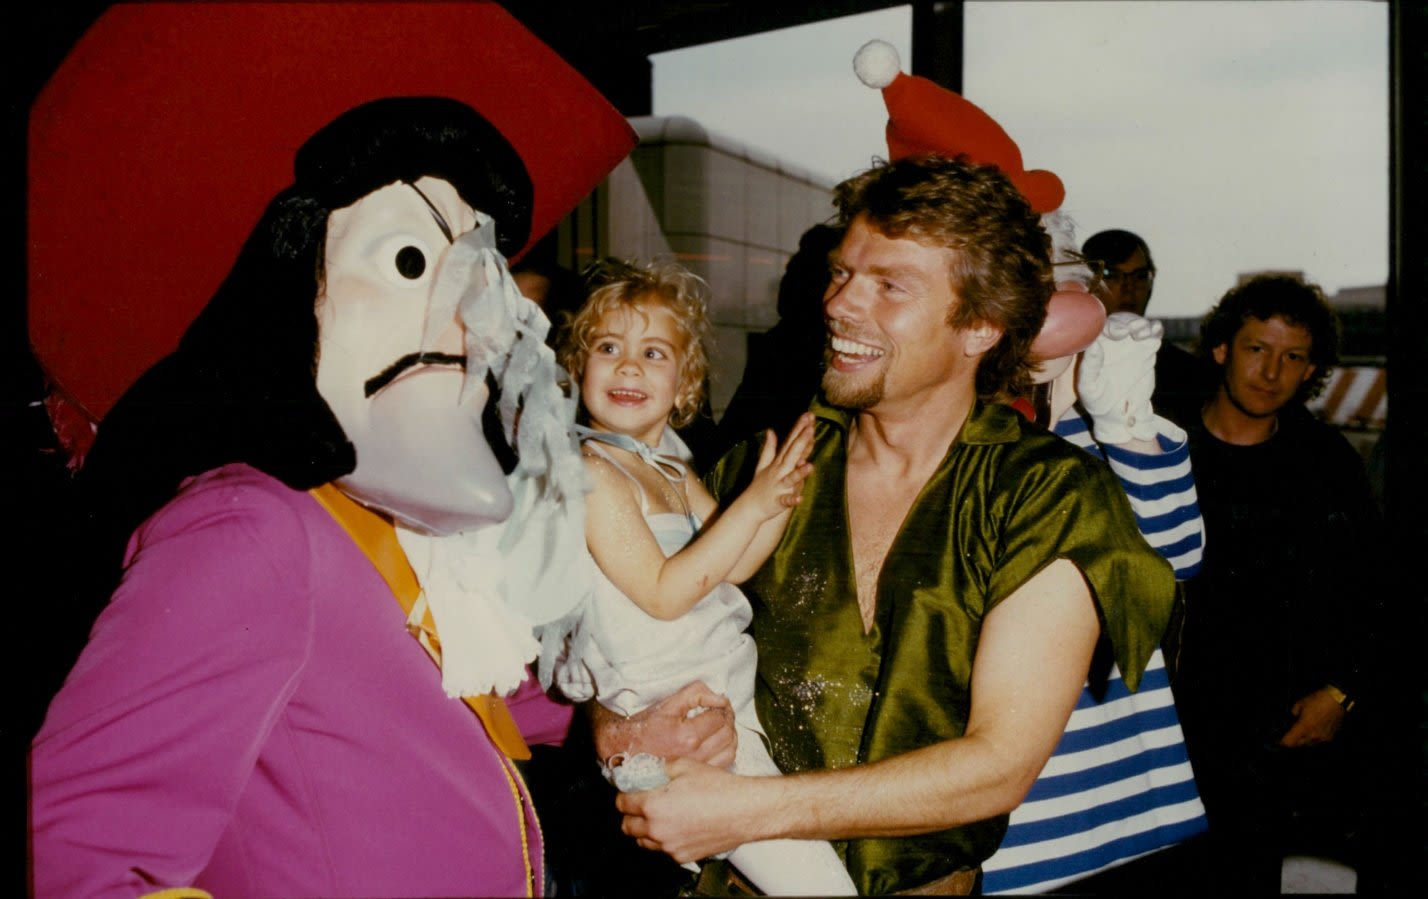 a young Richard Branson dressed as Peter Pan carries a toddler Holly Branson dressed as Tinkerbell